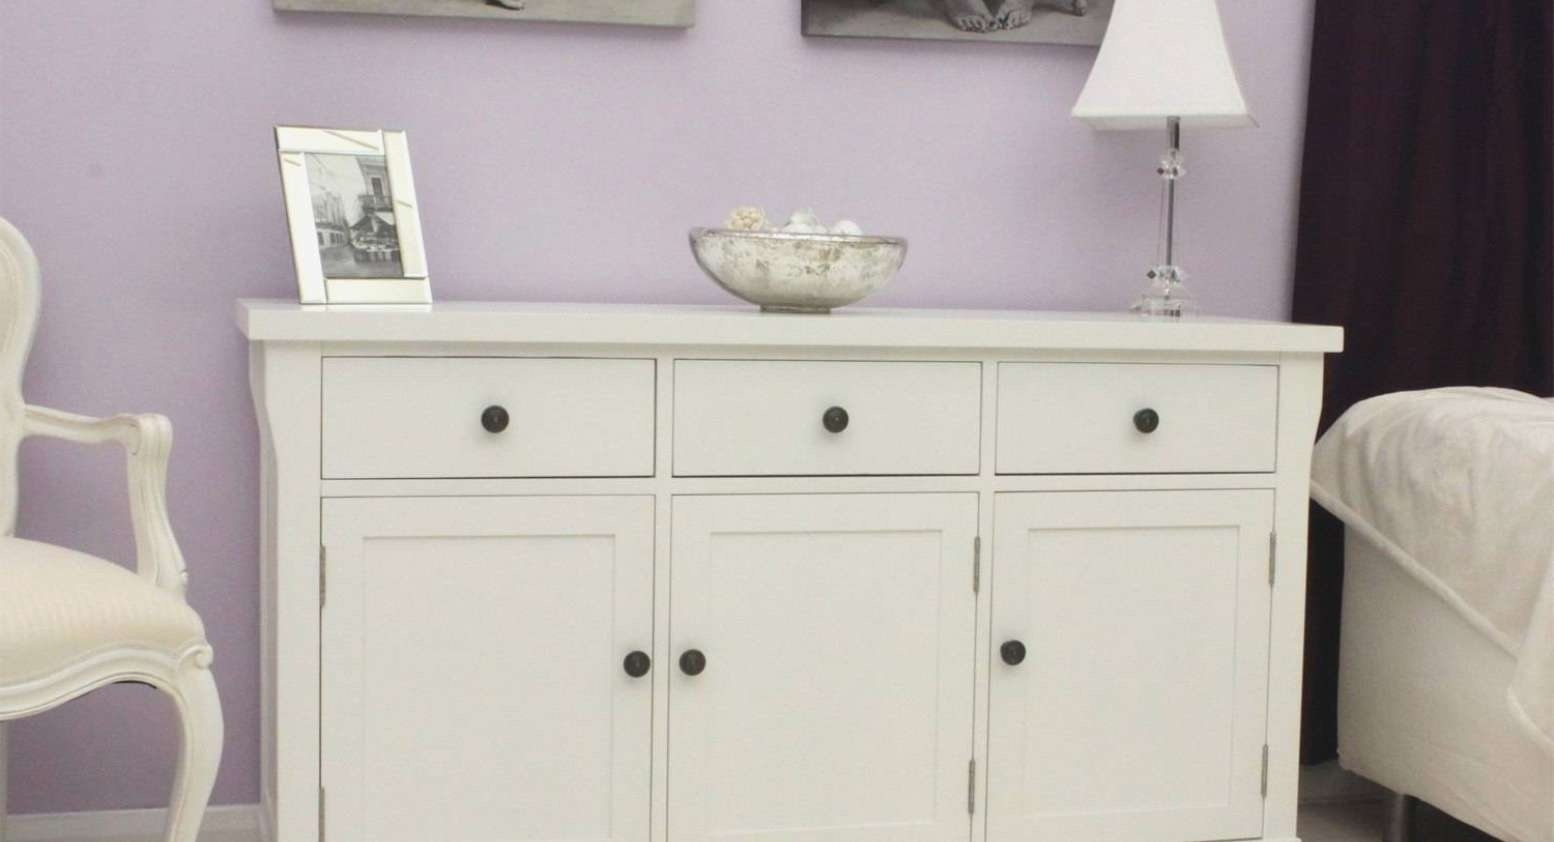 Sideboard : Sideboard Decor Awesome Living Room Sideboards Best 25 Intended For Living Room Sideboards (View 14 of 20)